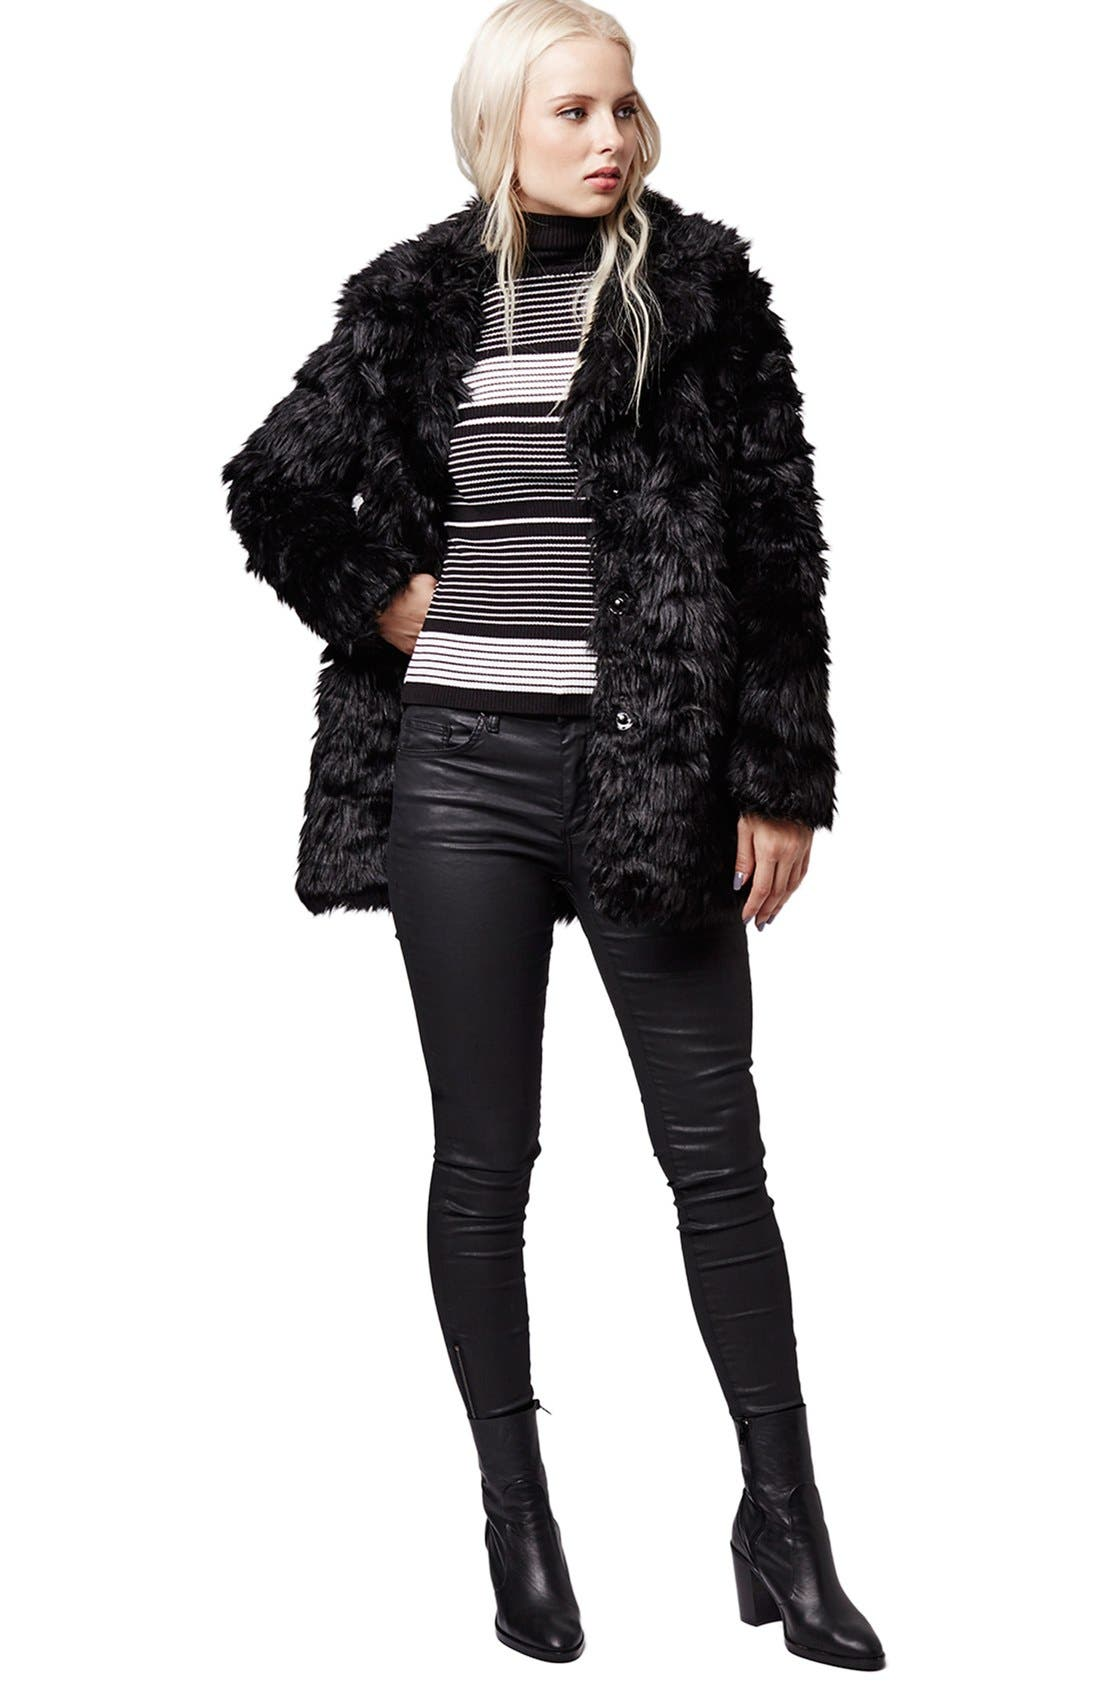 Urban Shaggy Faux Fur Coat,                             Alternate thumbnail 5, color,                             001